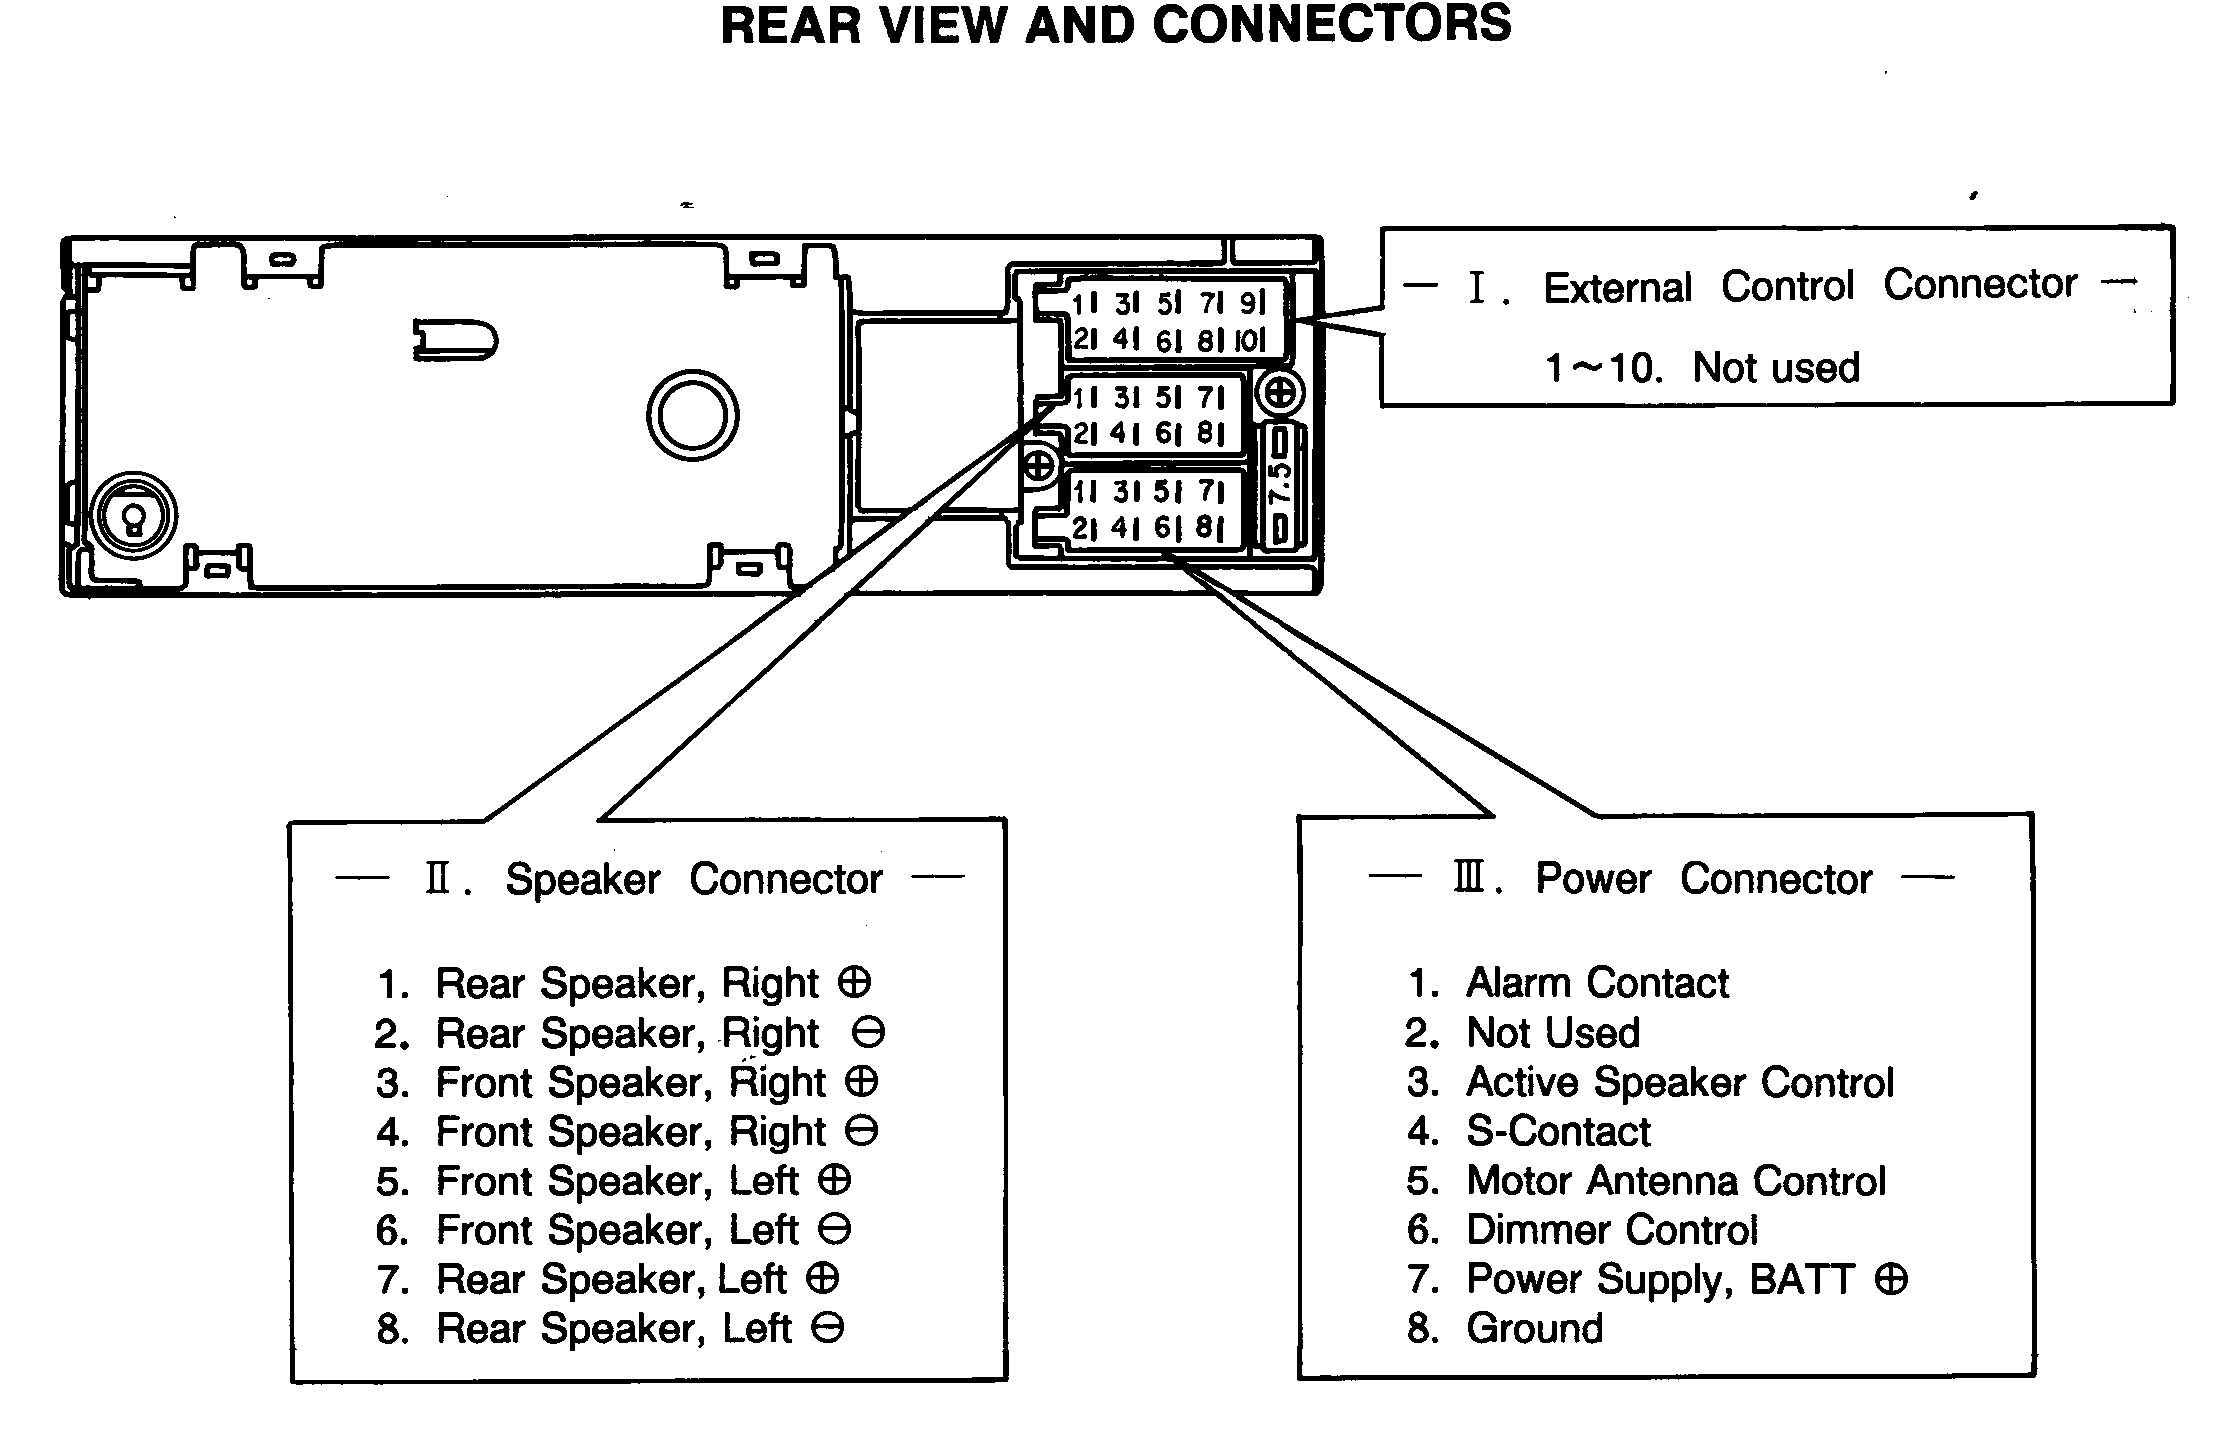 home audio wiring diagram cable tv wiring diagram aerial for rh detoxicrecenze com Wiring Diagrams for TV to Internet Satellite for RV Wiring Diagram